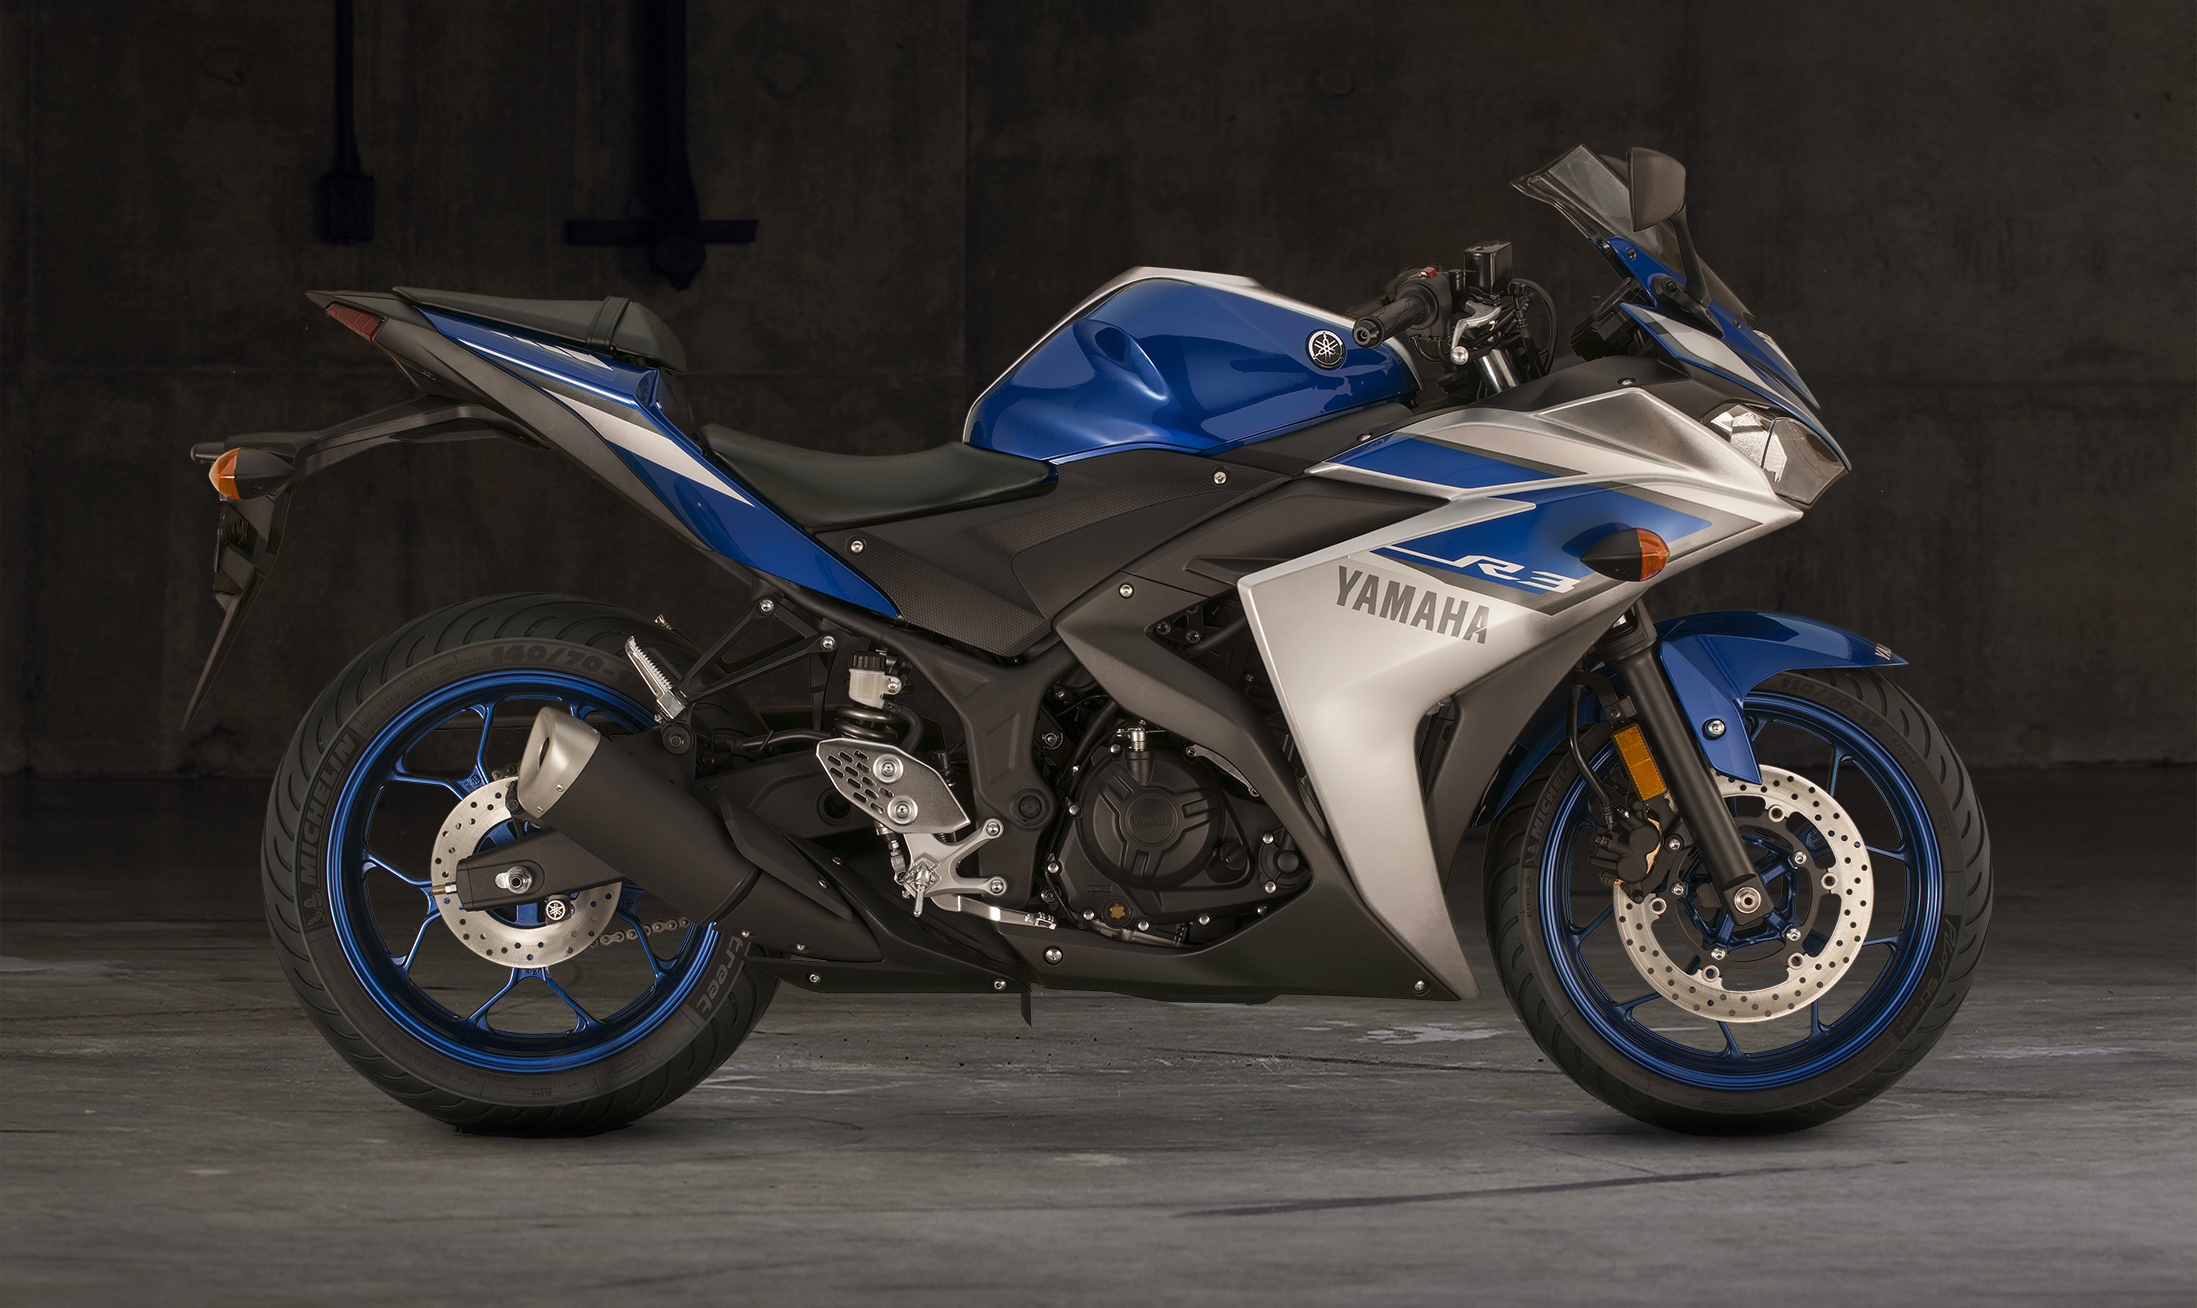 2015 Yamaha Yzf R3 Supersport Motorcycle 360 View